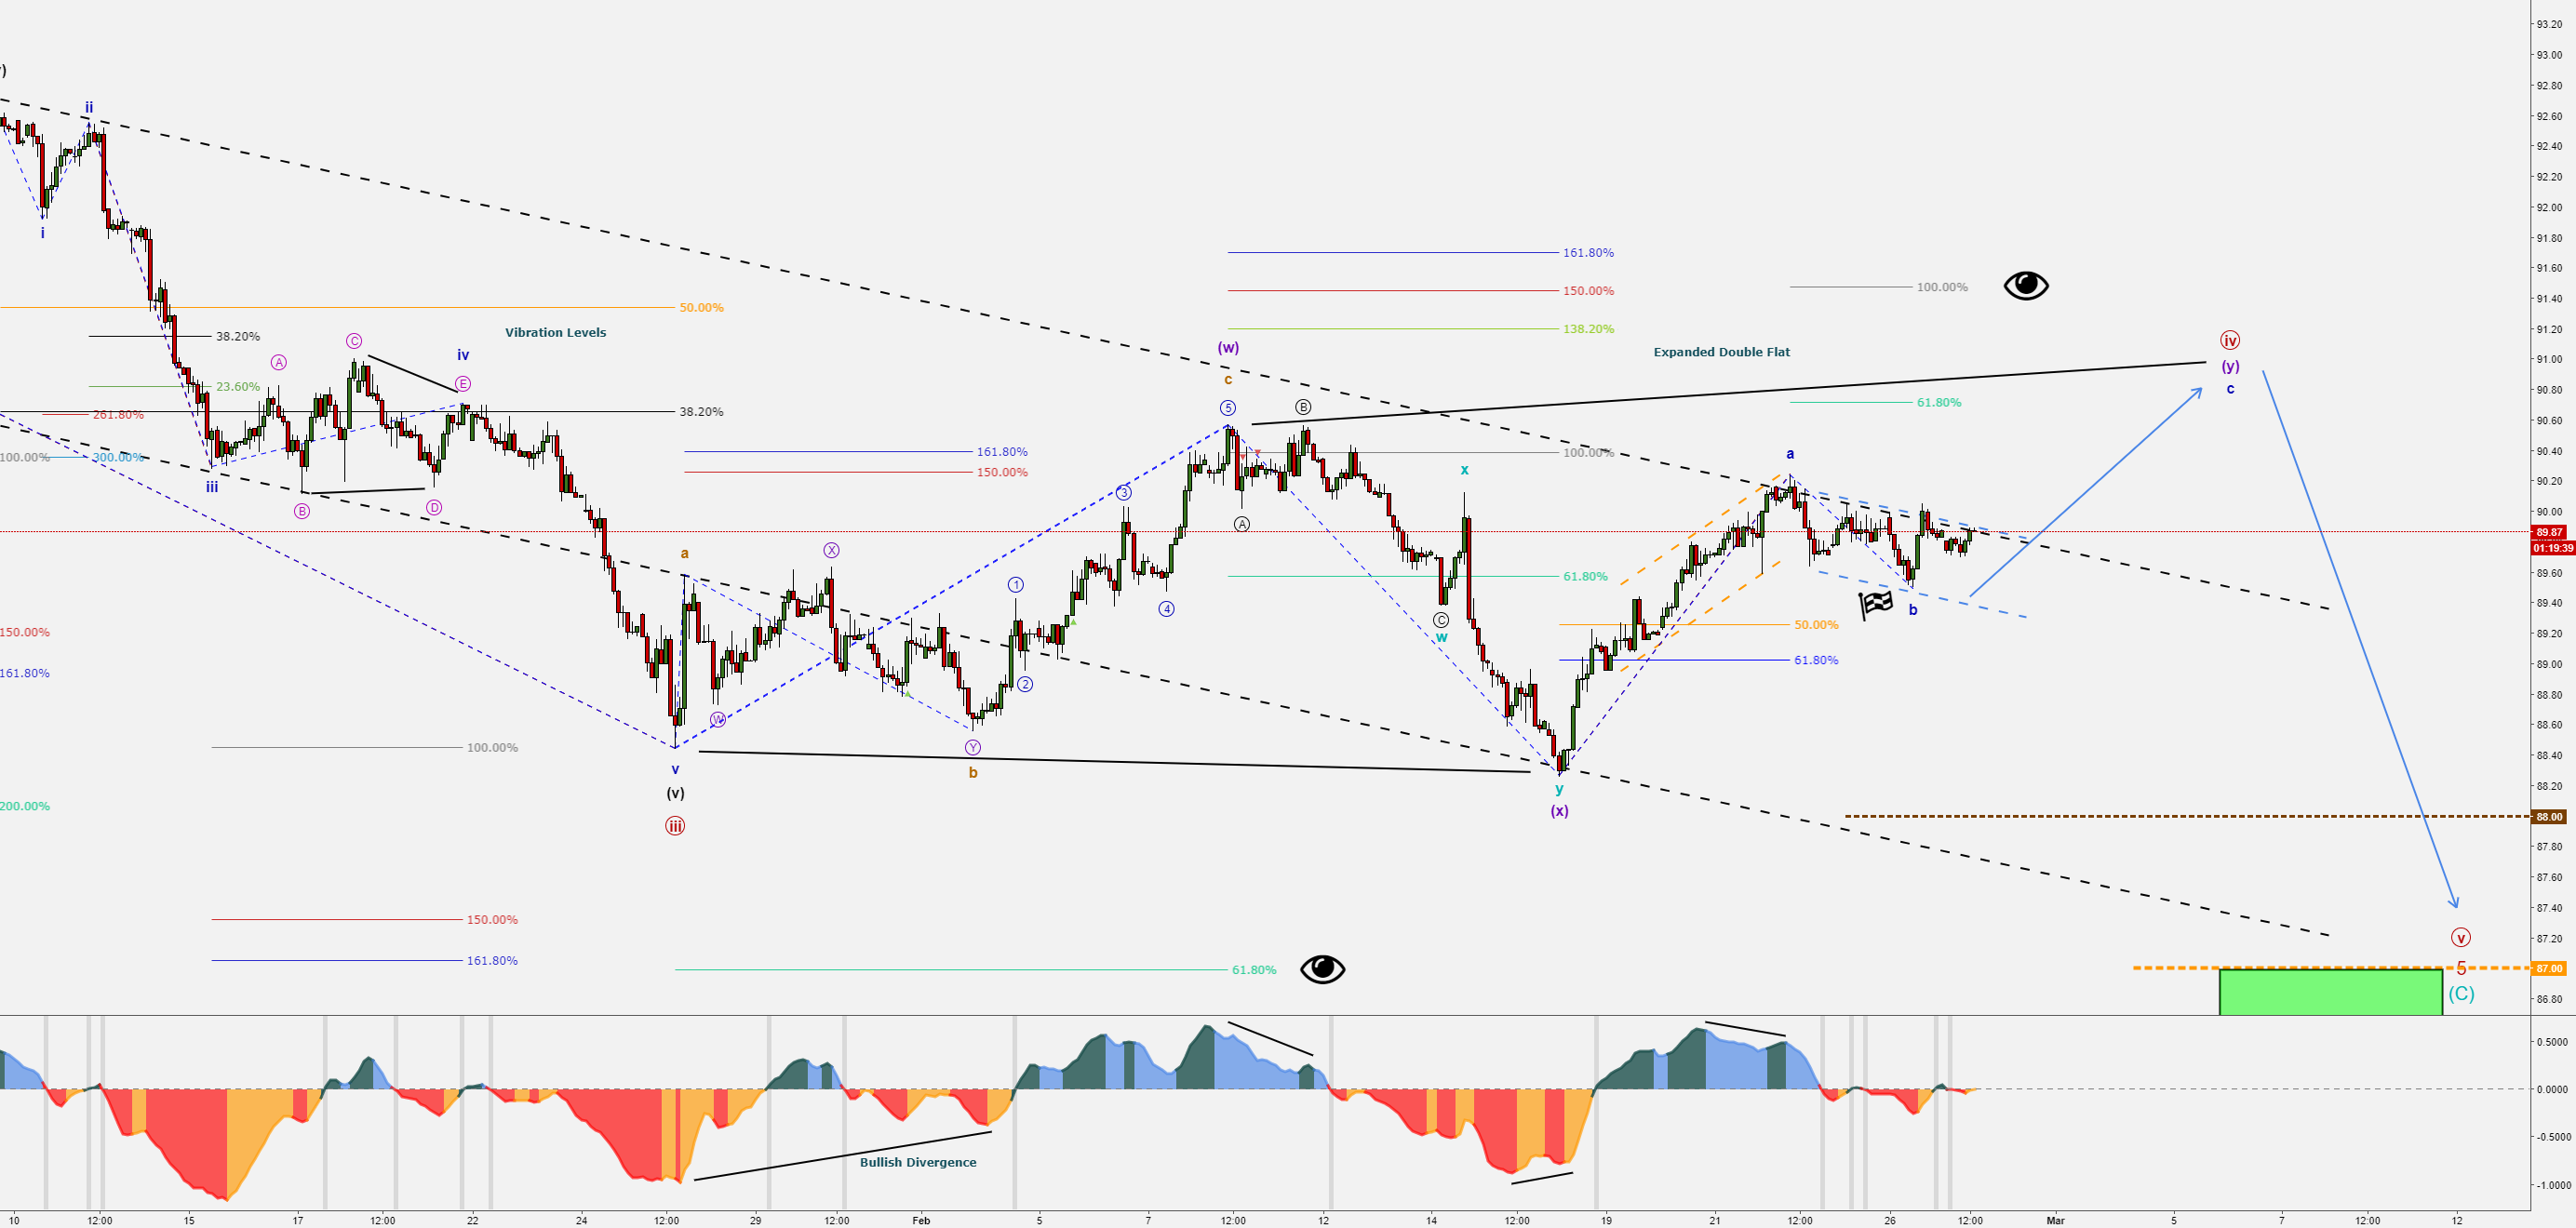 Dollar Index (DXY) - Completing the Correction - Bull then Bear